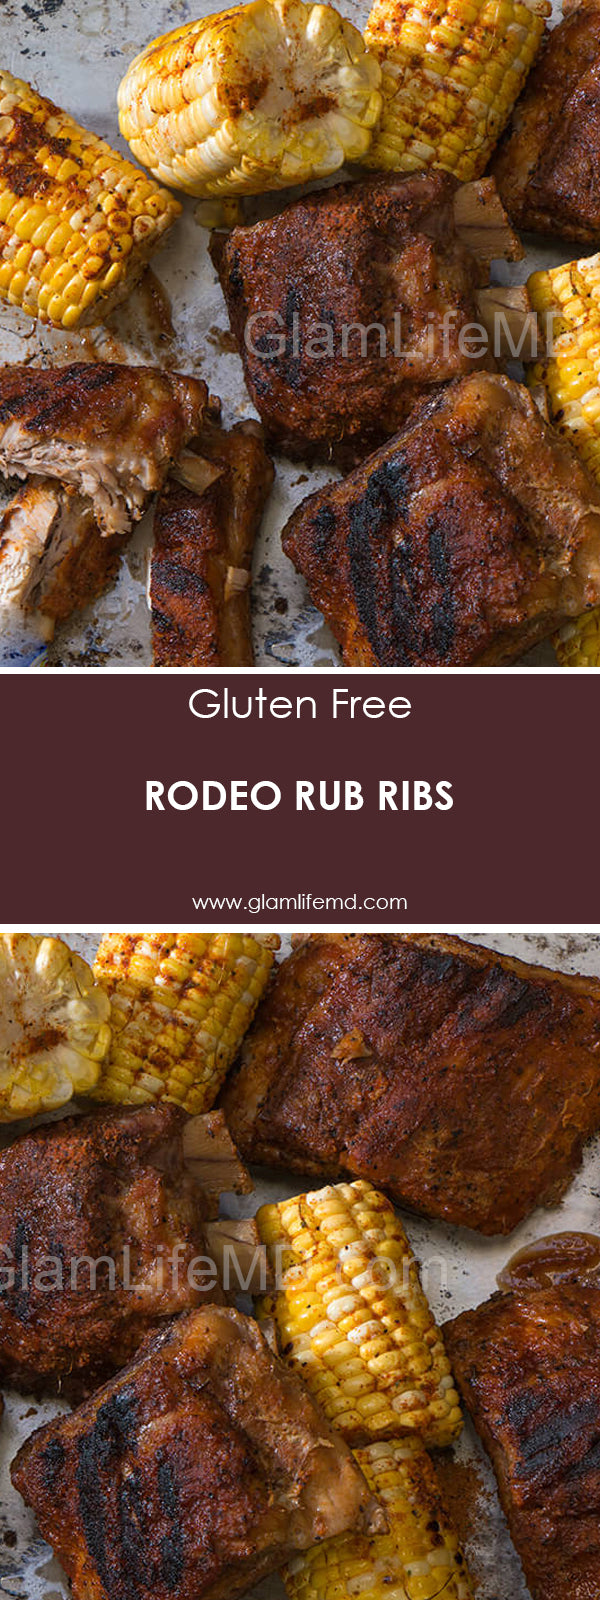 Rodeo Rub Ribs | Beef Dinner Recipes